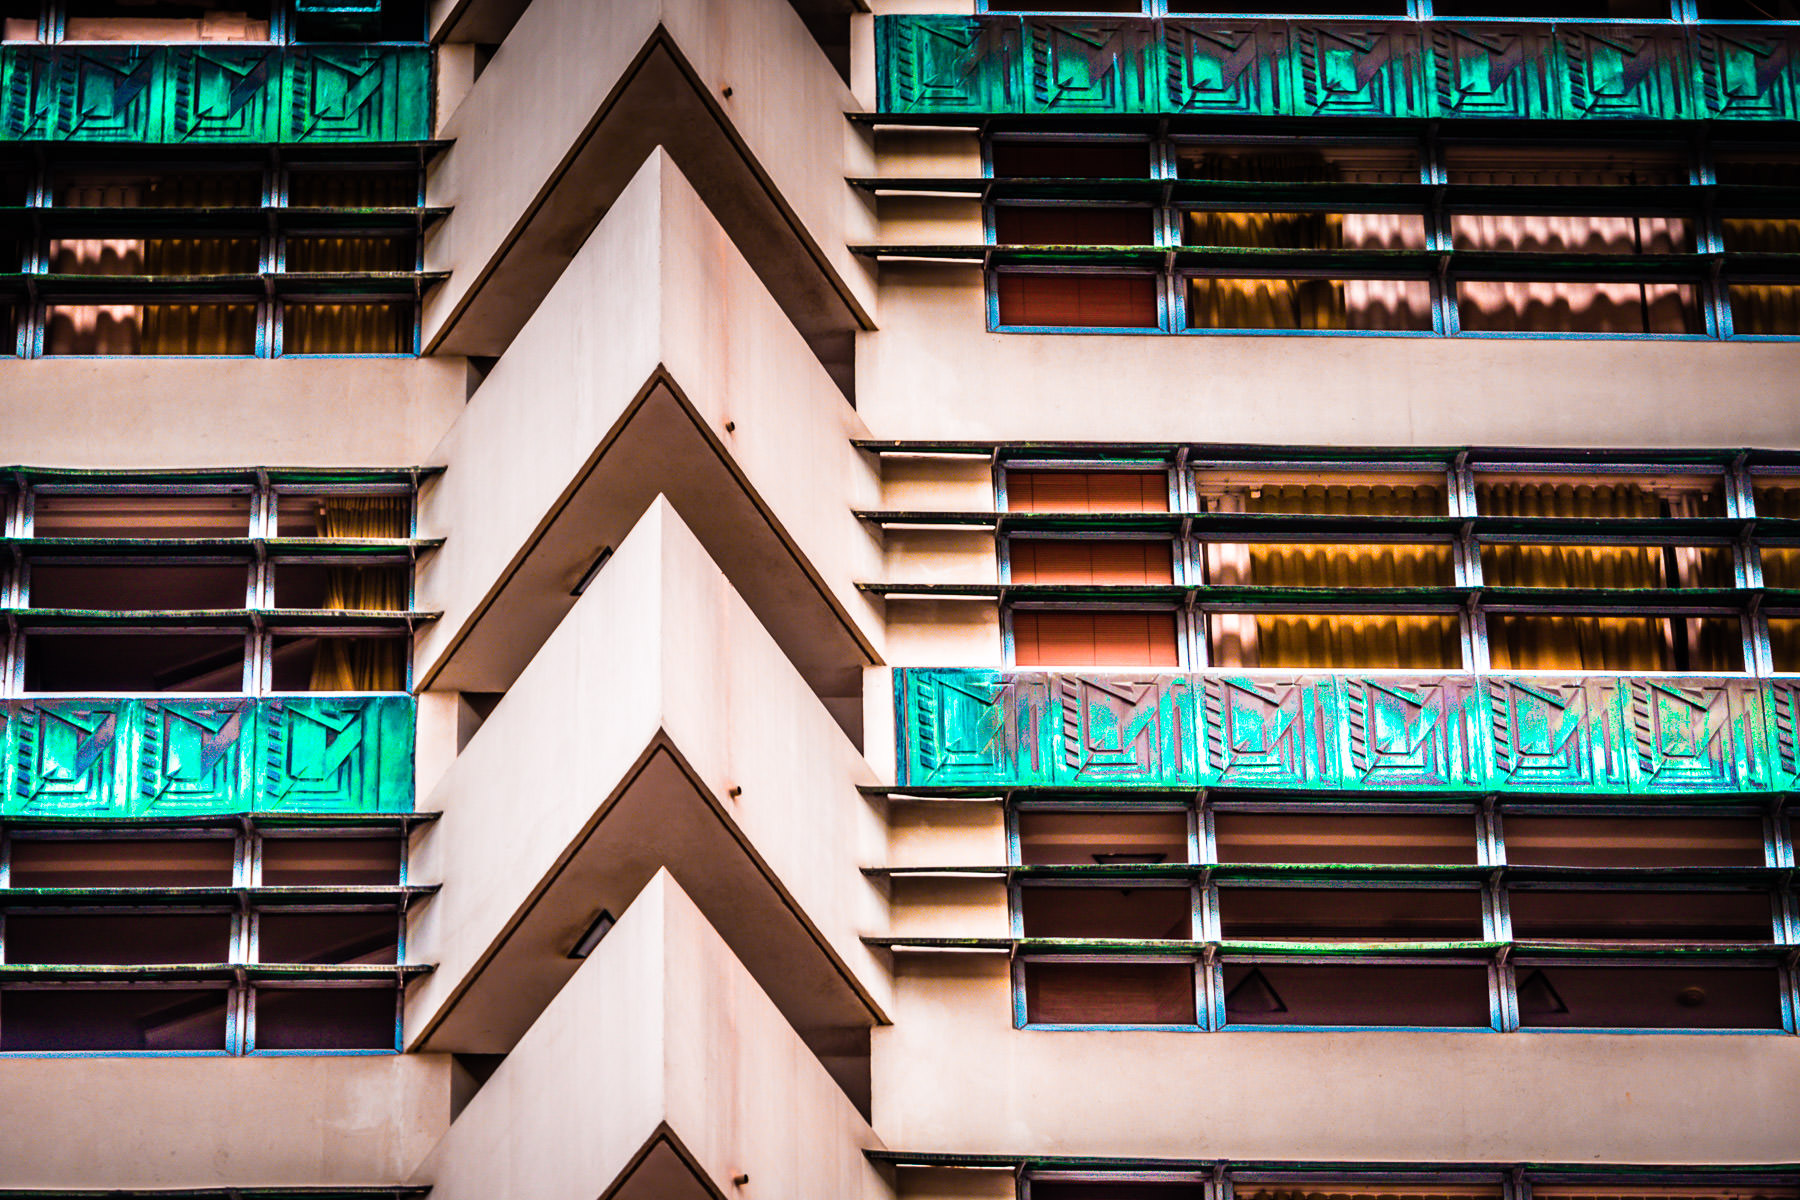 Architectural detail of the Frank Lloyd Wright-designed Price Tower in Bartlesville, Oklahoma.